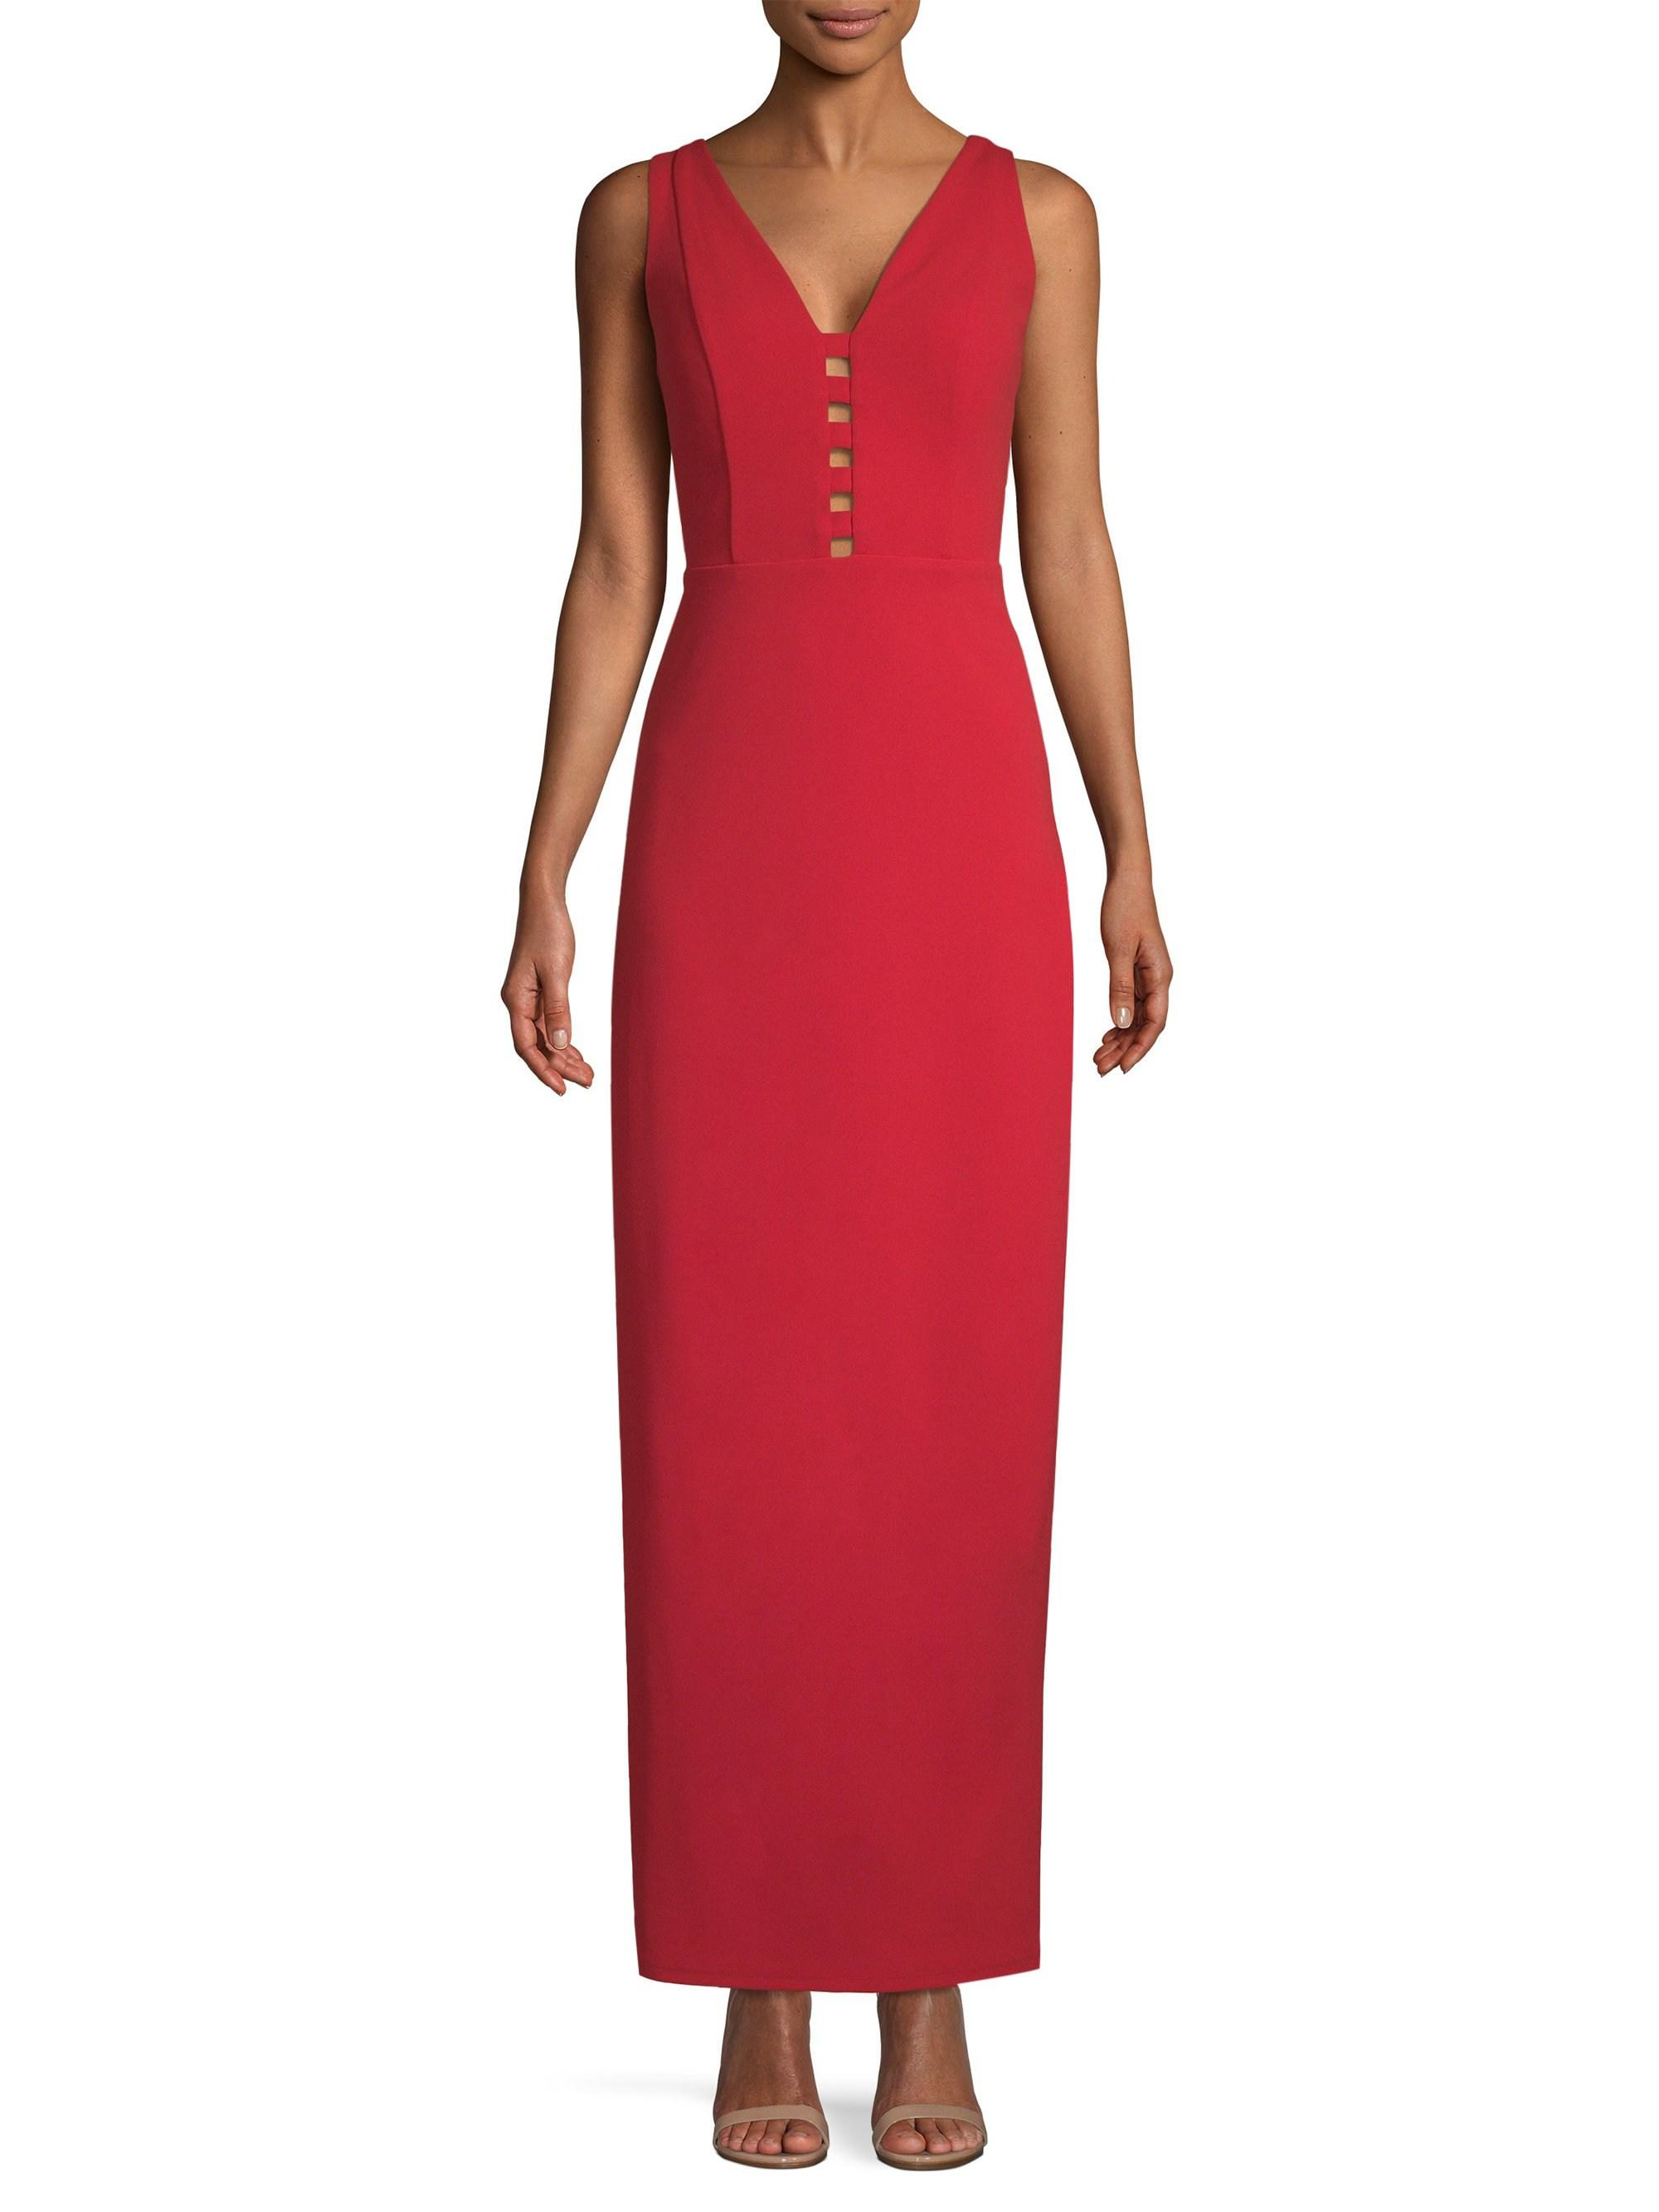 Lyst - Laundry by Shelli Segal Fitted Cut-out Crepe Gown in Red 5cf4a6b1de